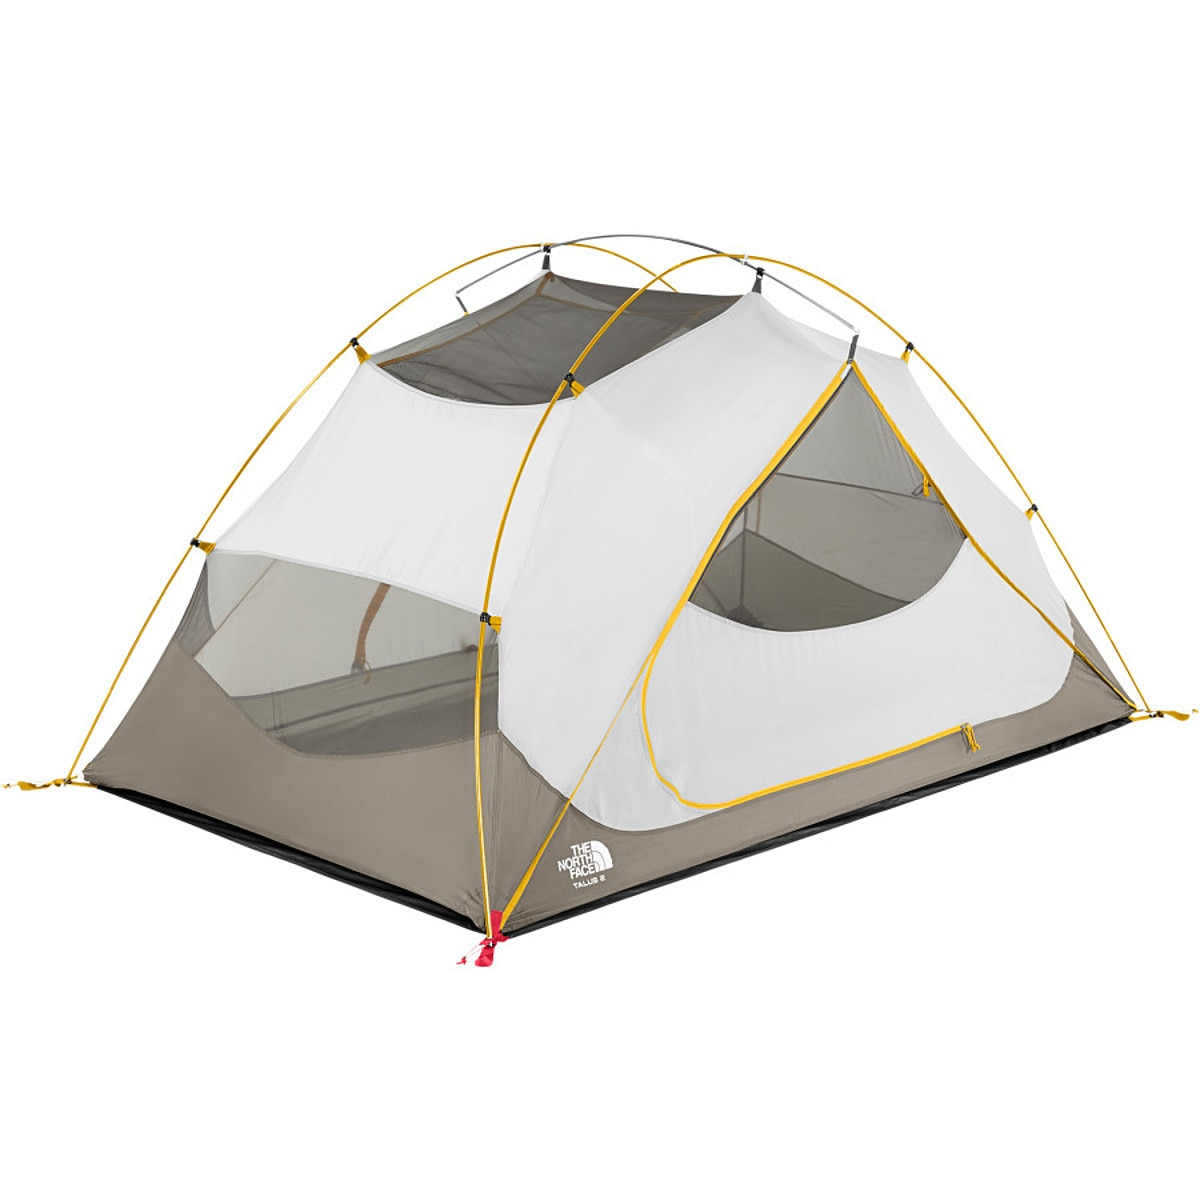 The North Face Talus 2 Tent: